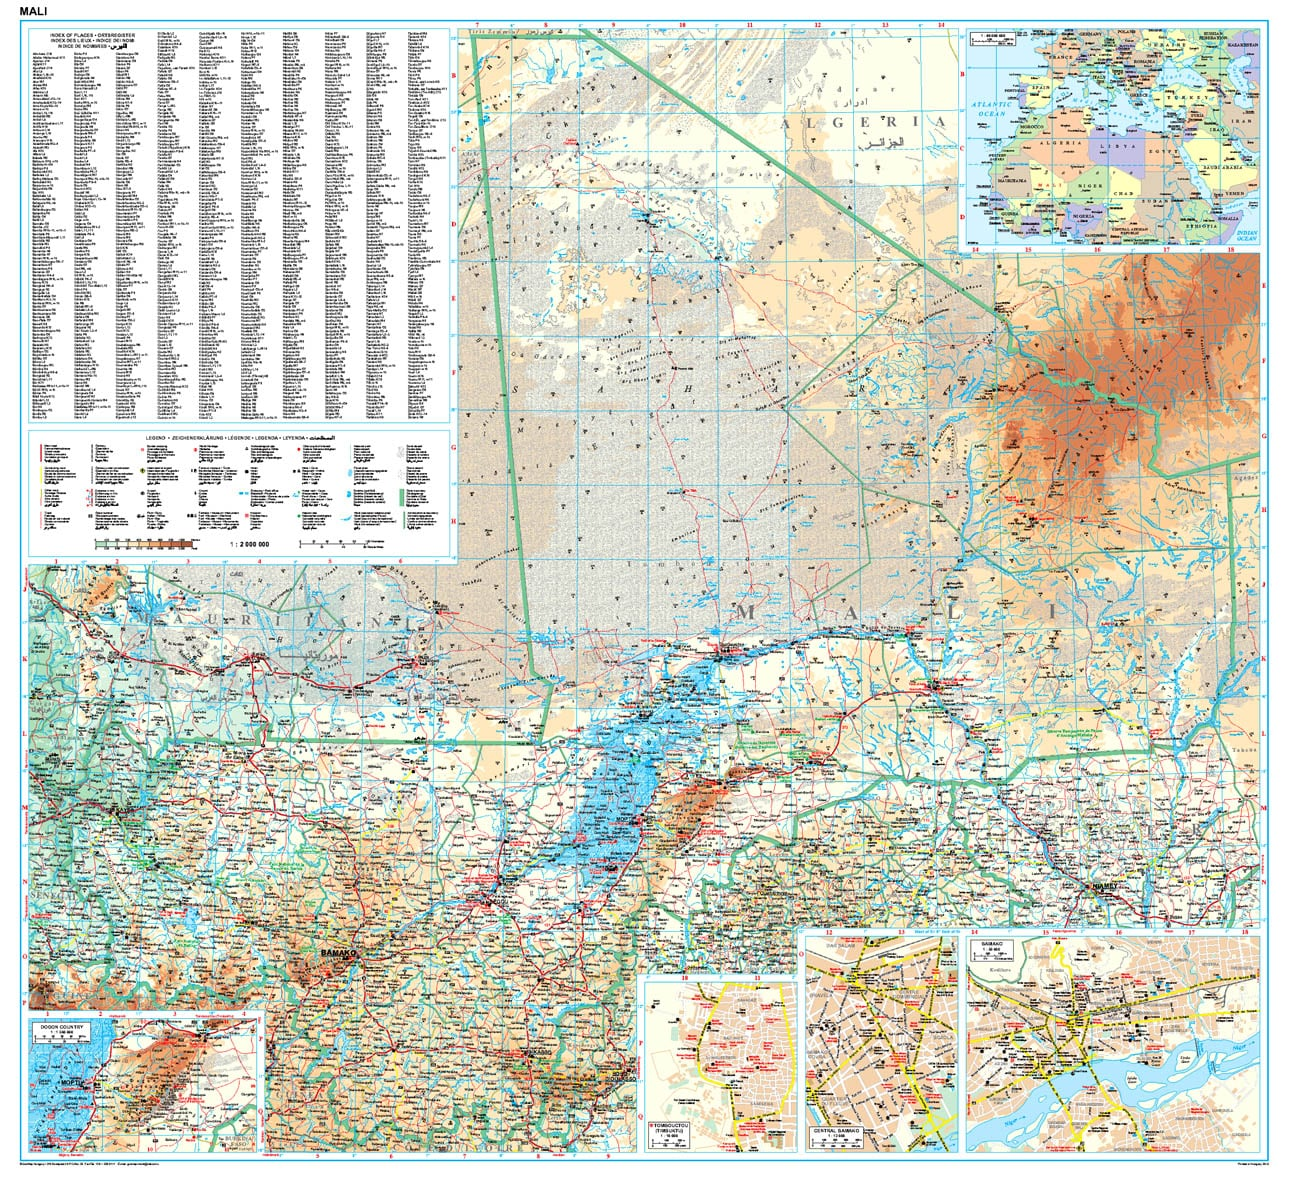 Mali Wall Map 96 x 88cm - Africa Countries - Africa - Wall Maps